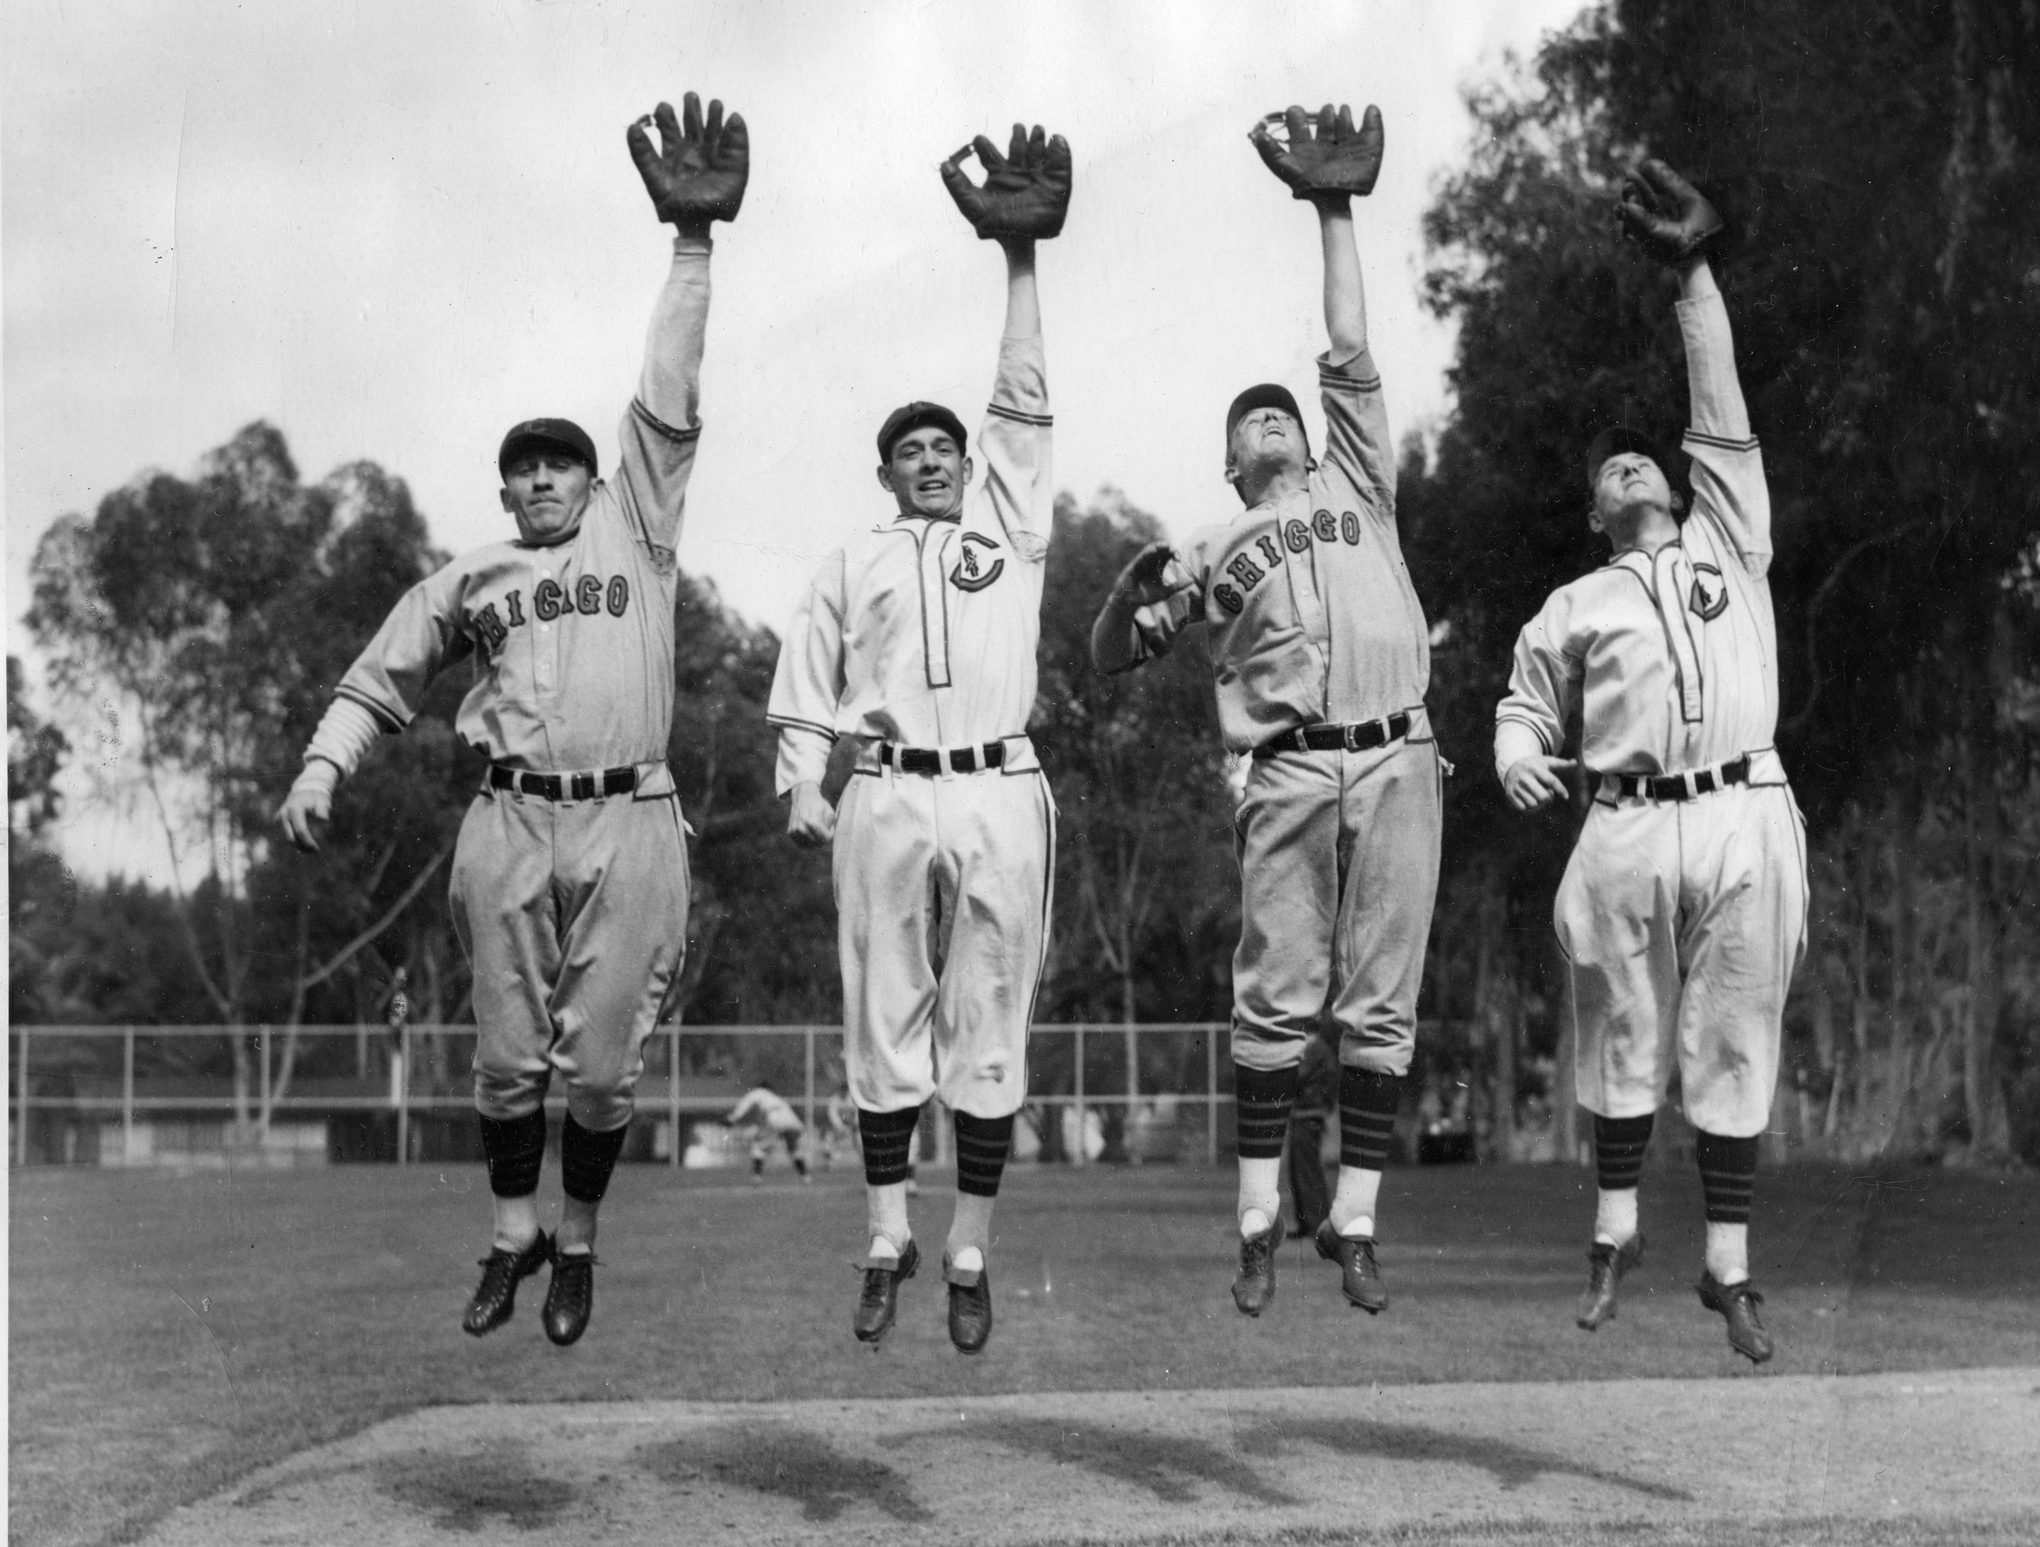 Frank Demaree, seen here on the far right in spring training with the Cubs in 1935, along with Kiki Cuyler, Augie Galan, and Tuck Stainback.